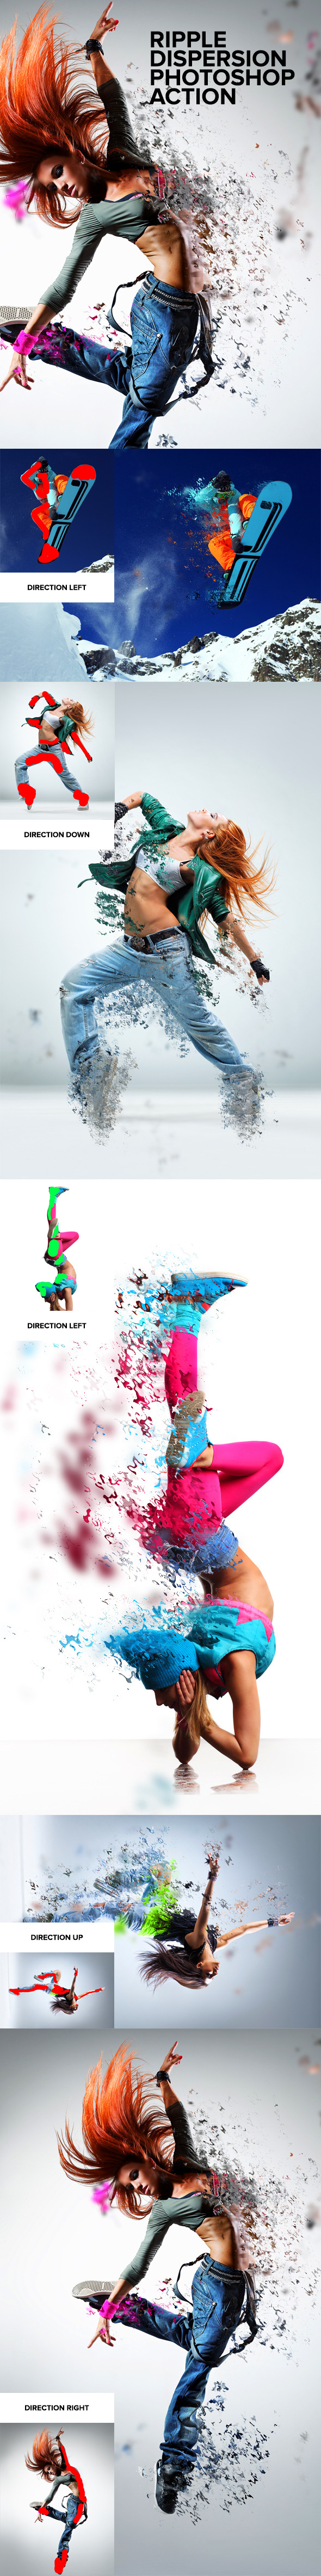 GraphicRiver Ripple Dispersion Photoshop Action 8828273